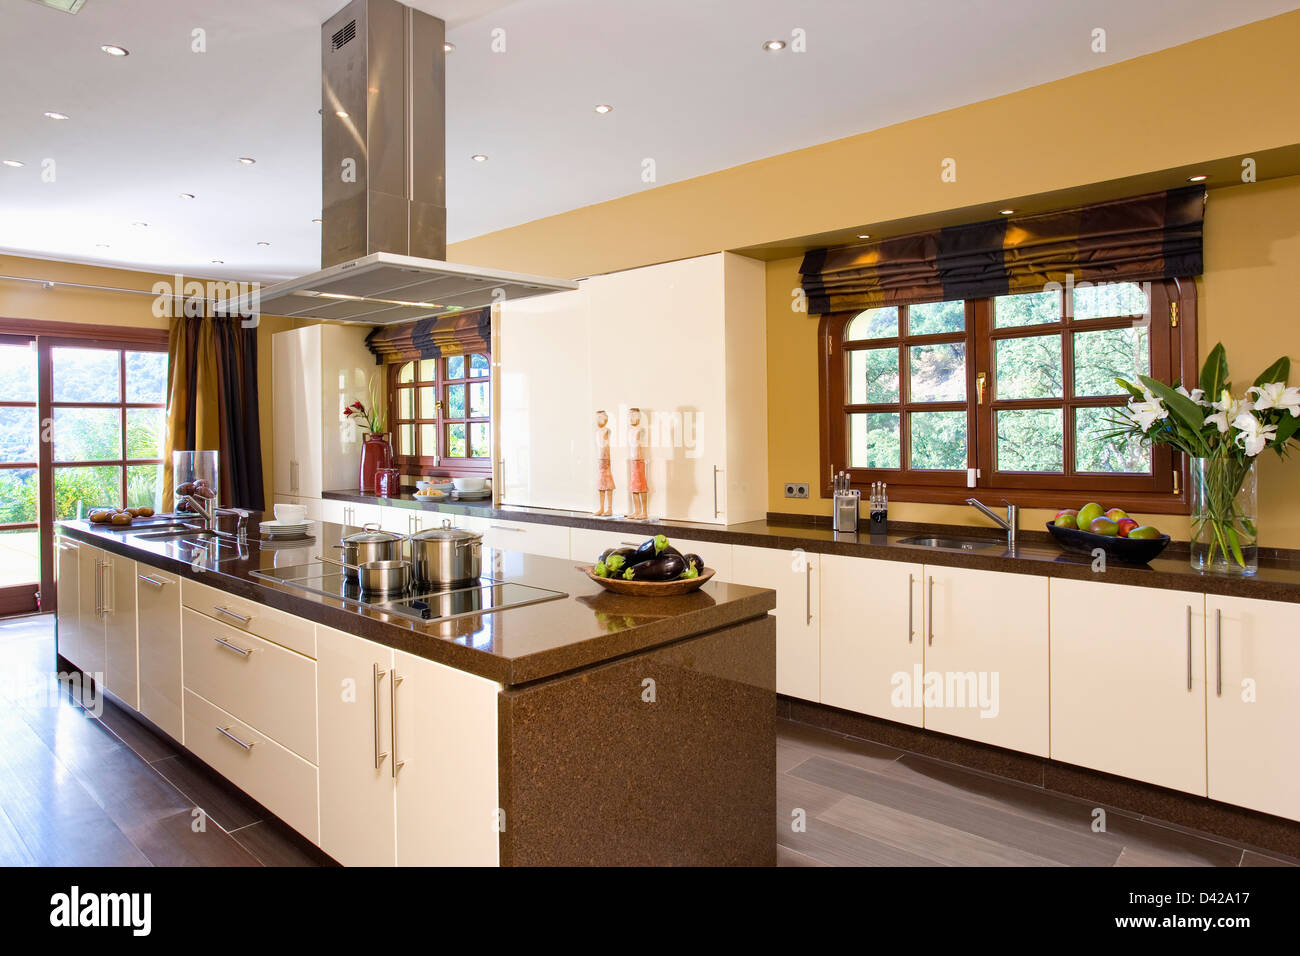 Kitchen Island Extractor extractor fan over island unit in modern kitchen in spanish villa